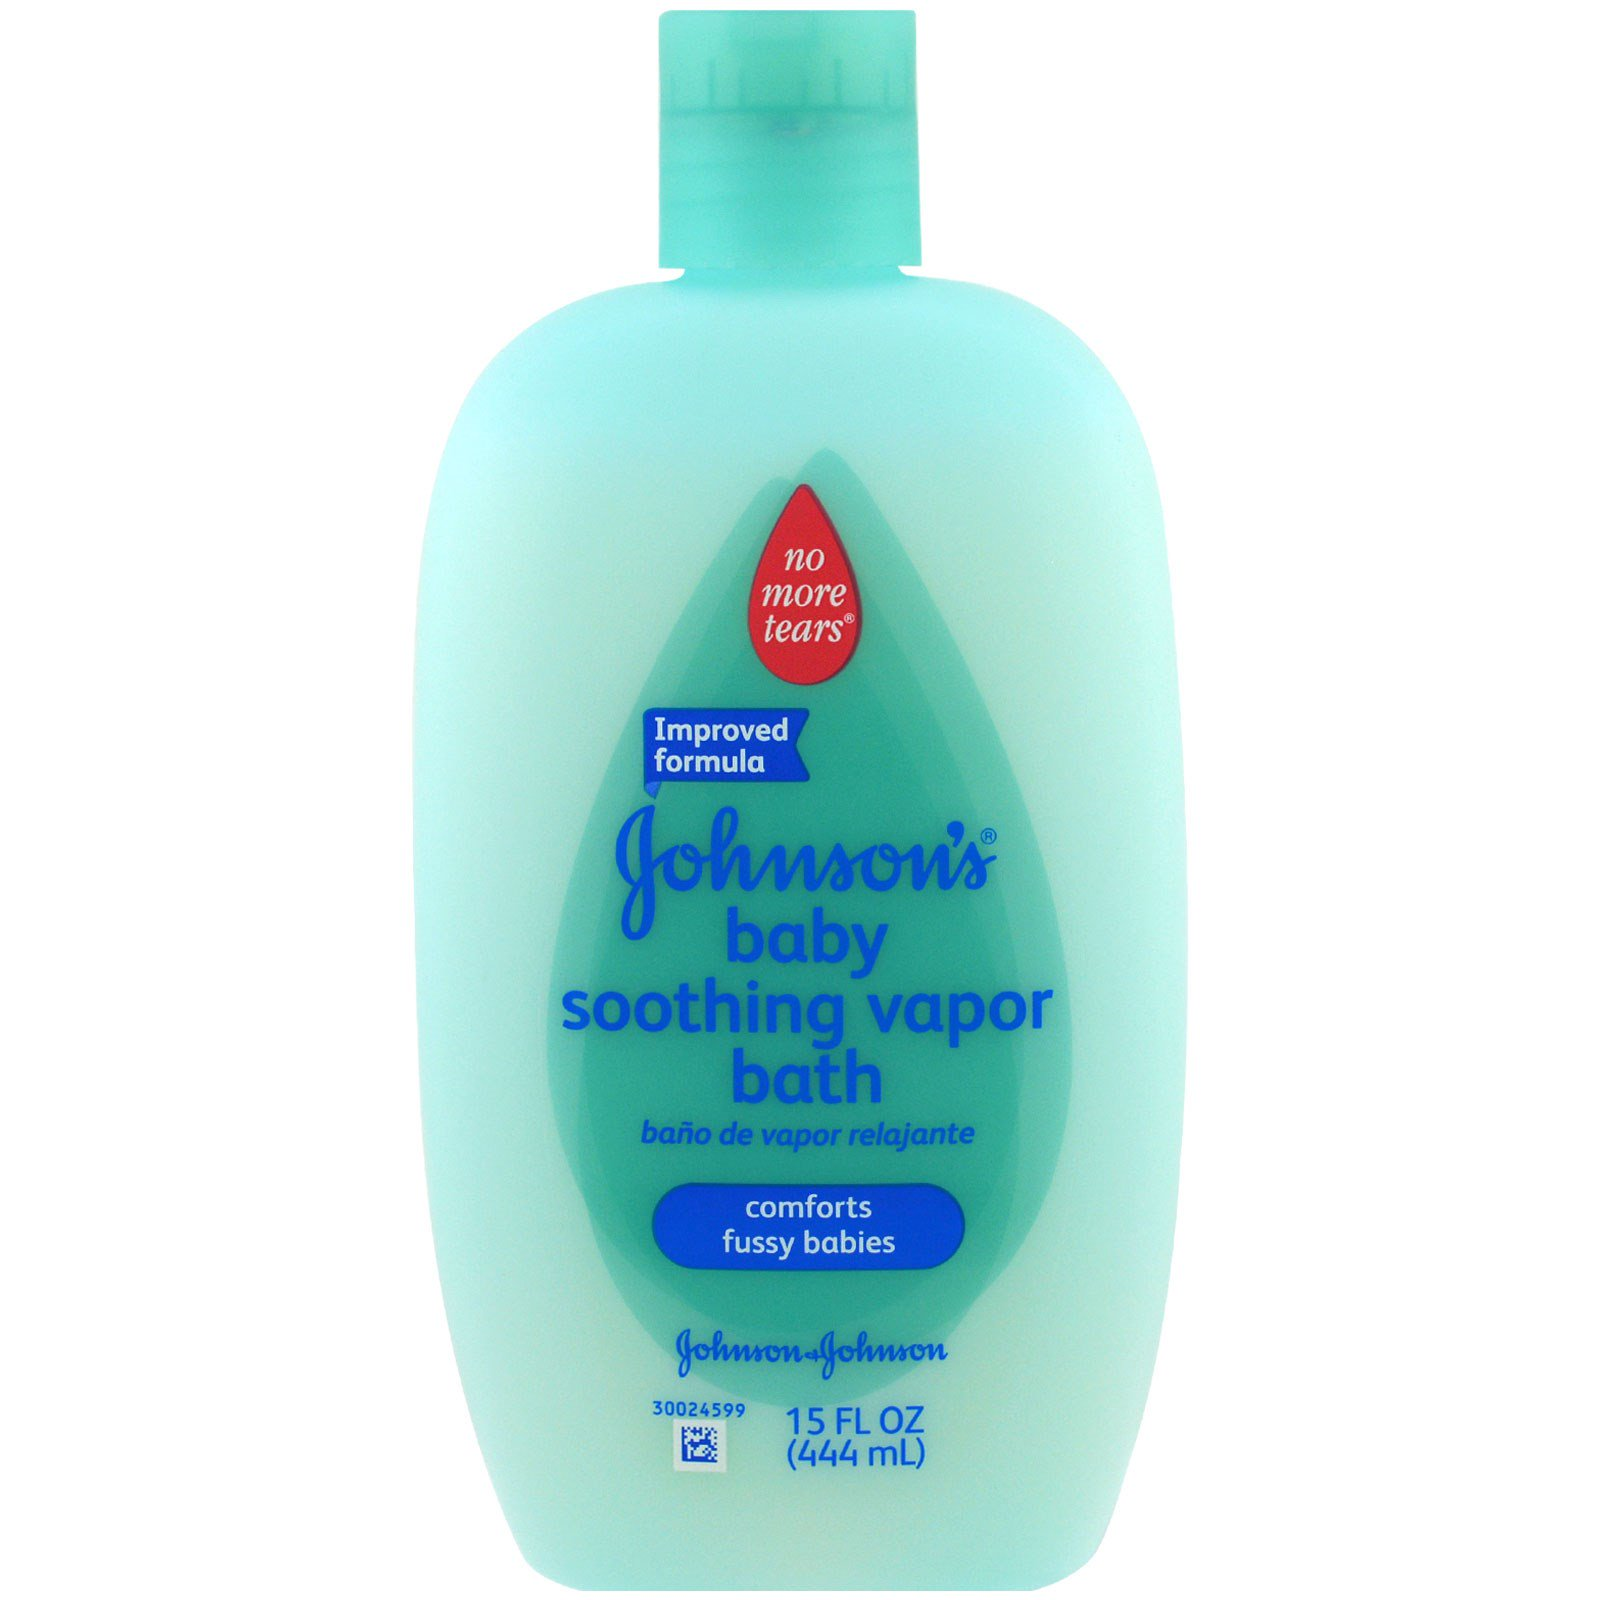 Johnson's Baby, Soothing Vapor Baby Bath, 15ж. унц.(444 мл)